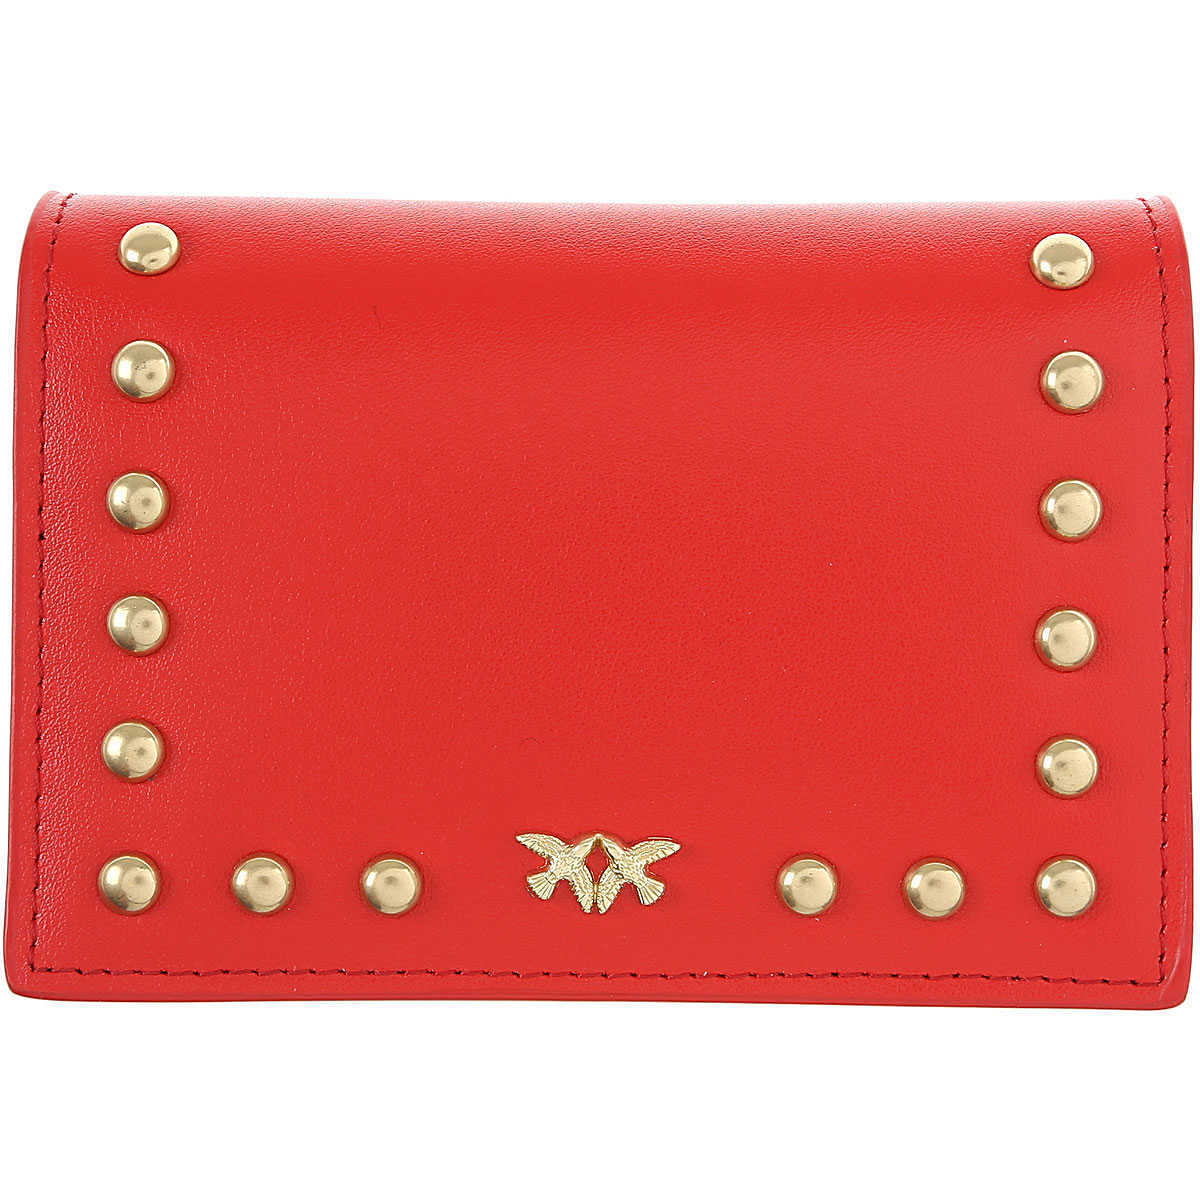 Pinko Card Holder for Women On Sale coral red UK - GOOFASH